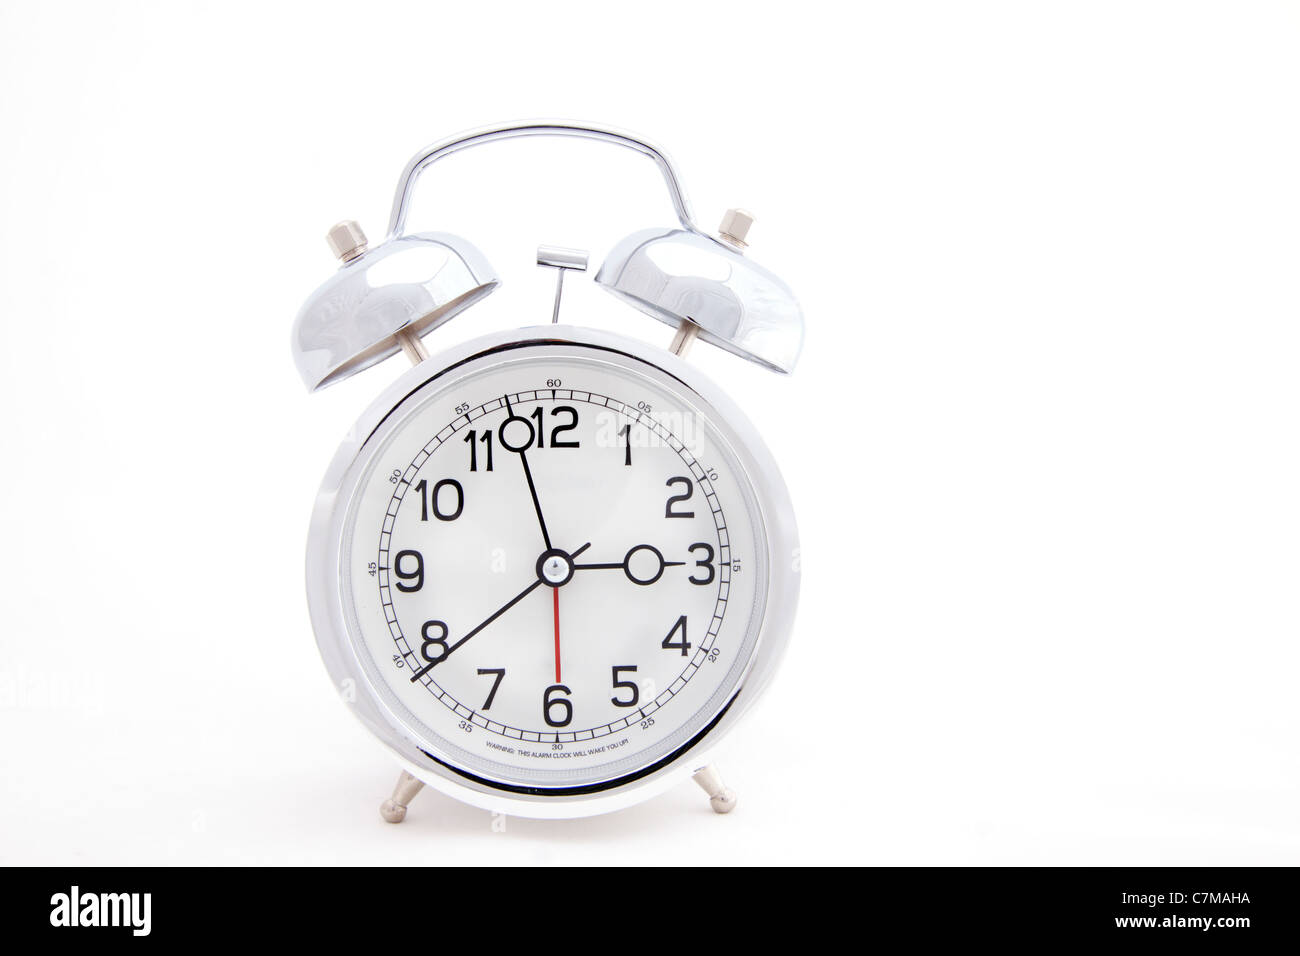 Alarm clock with time approaching 3 O' clock - Stock Image